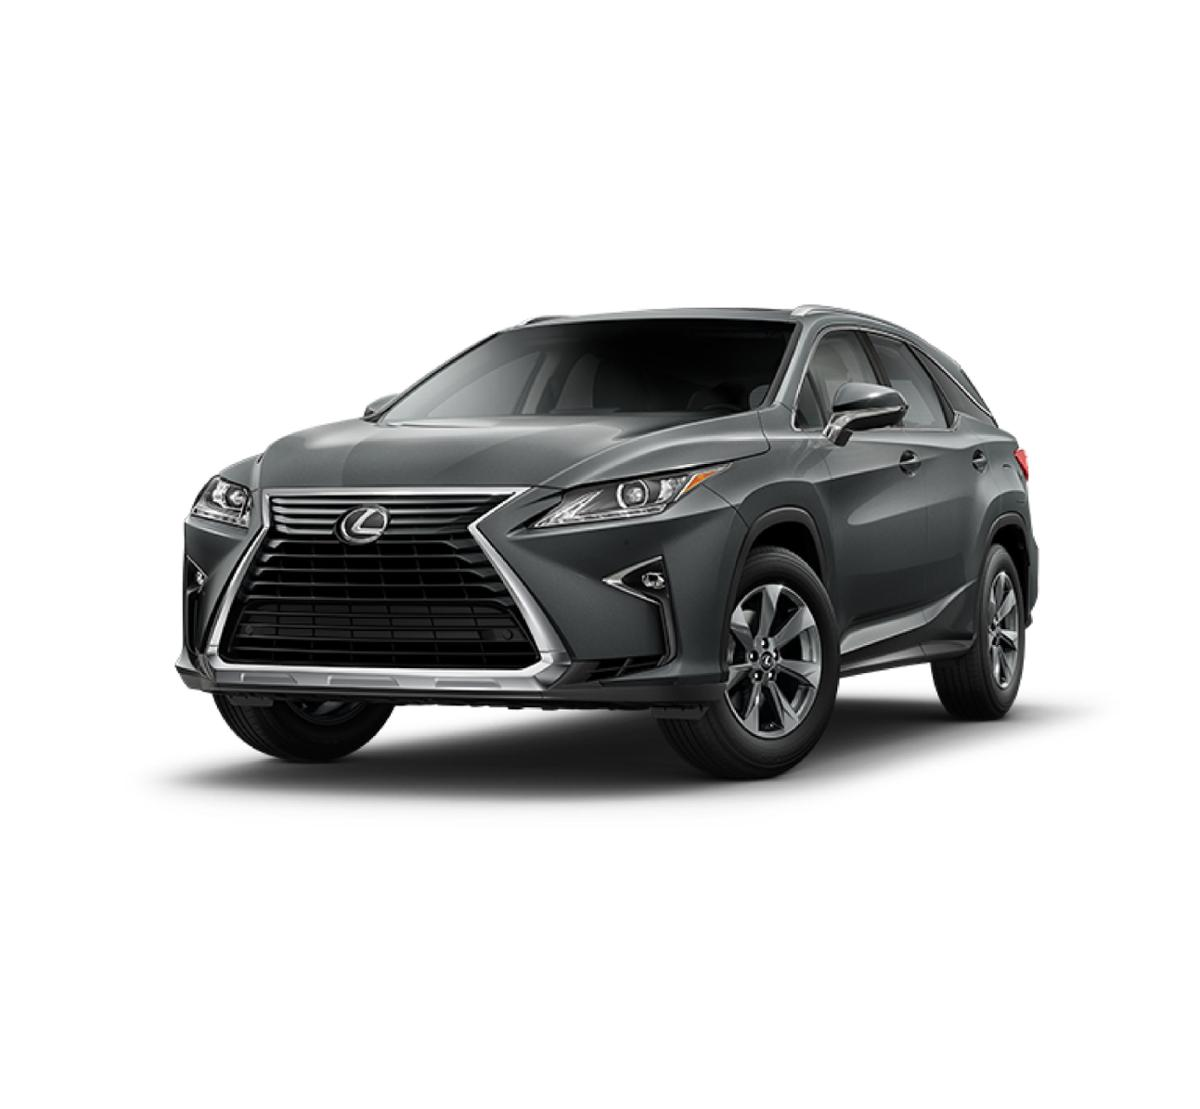 2018 Lexus RX 350L Vehicle Photo in Santa Monica, CA 90404